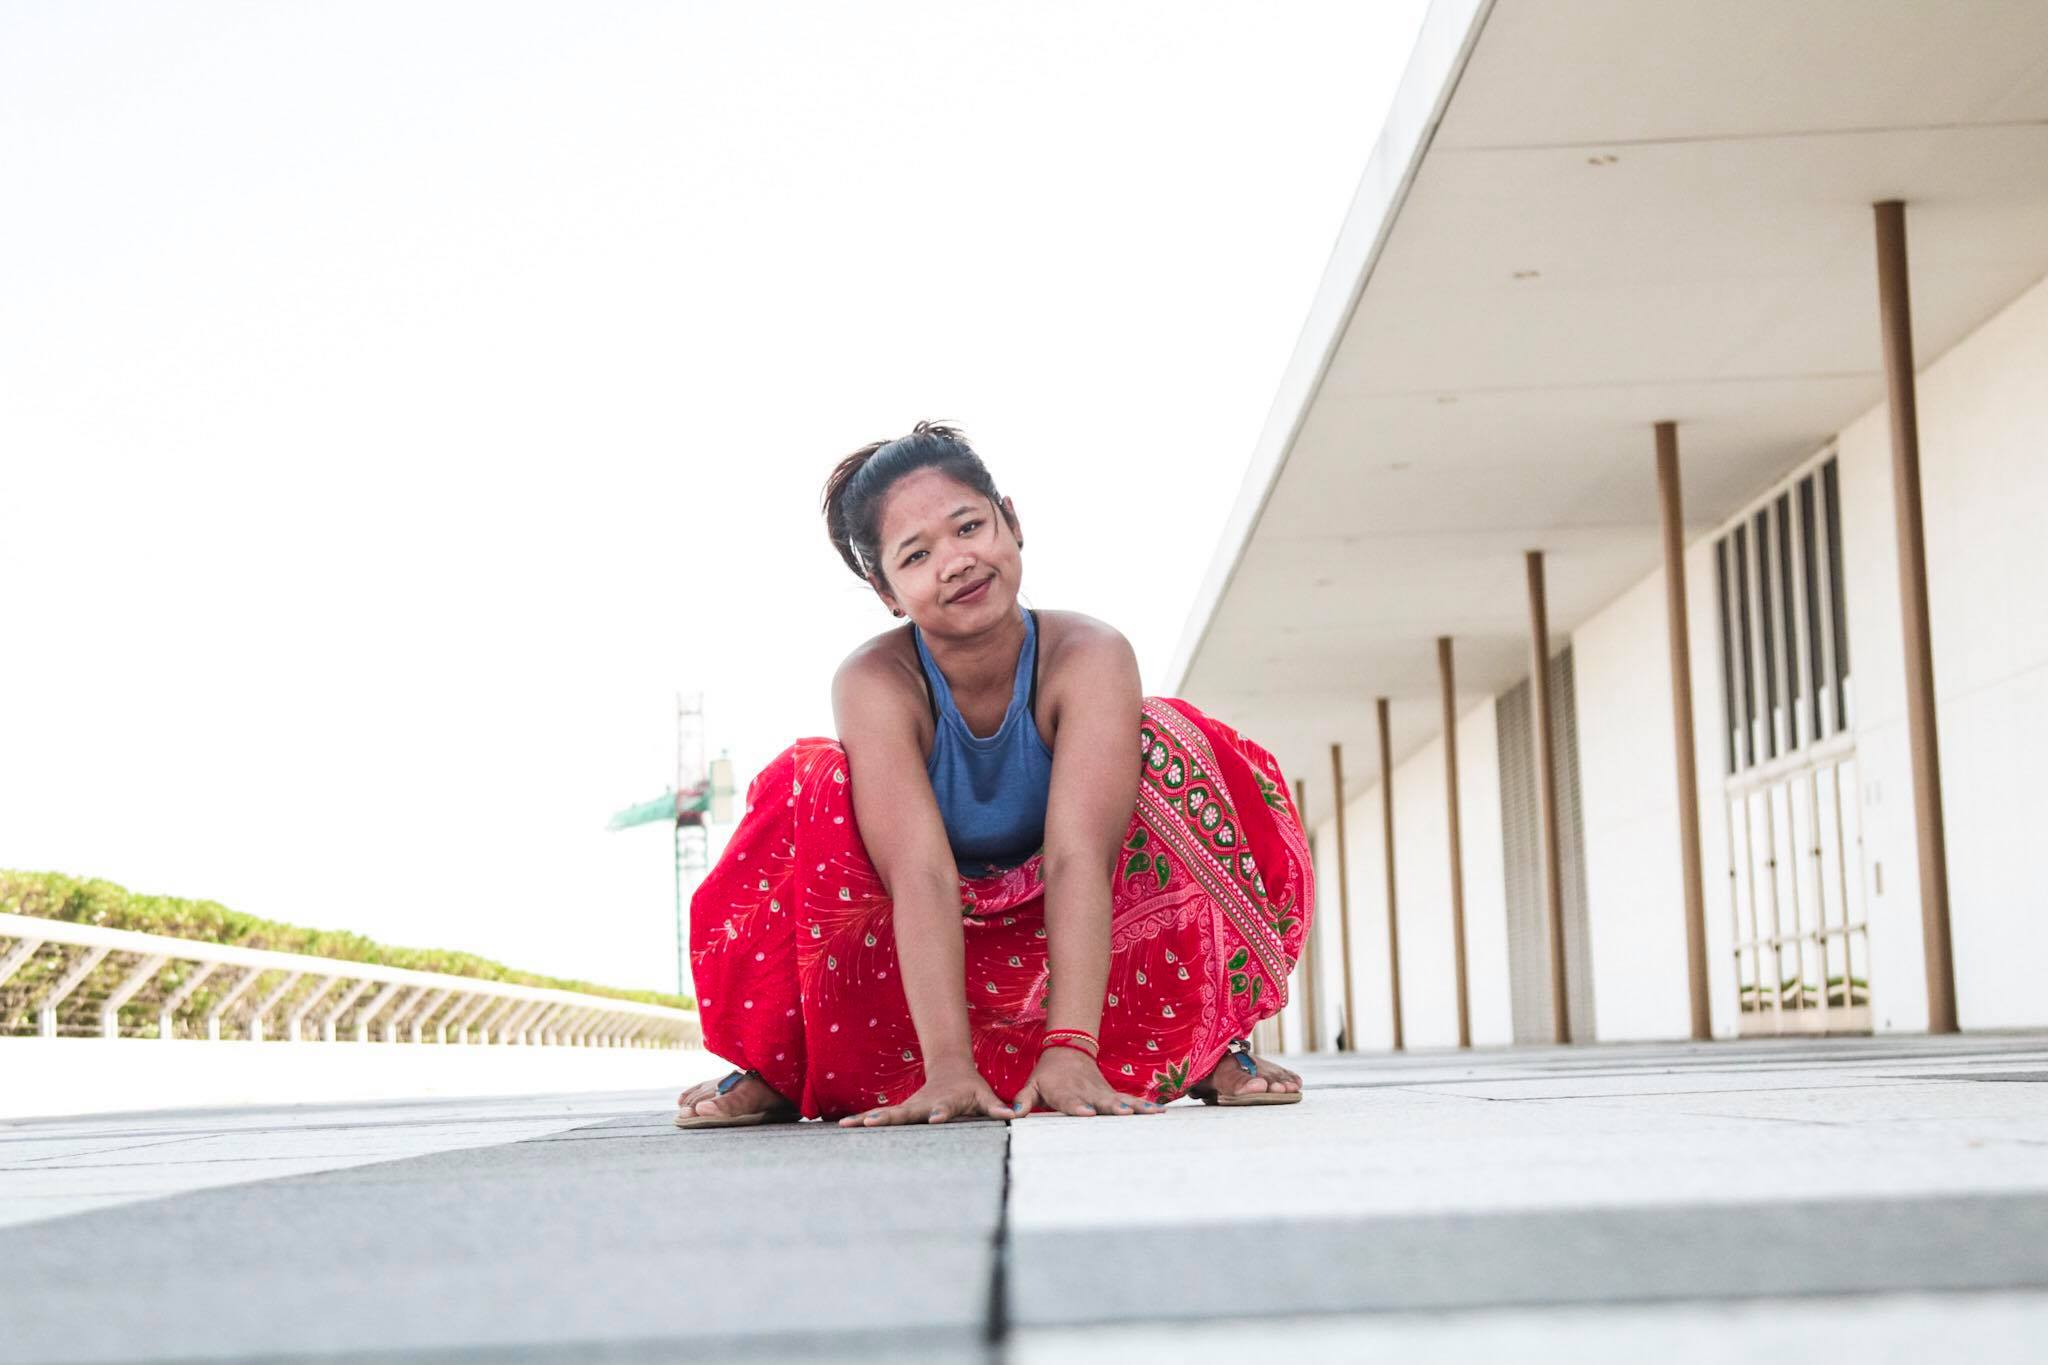 Rooftop of John f. Kennedy Center for the Performing Arts (4)